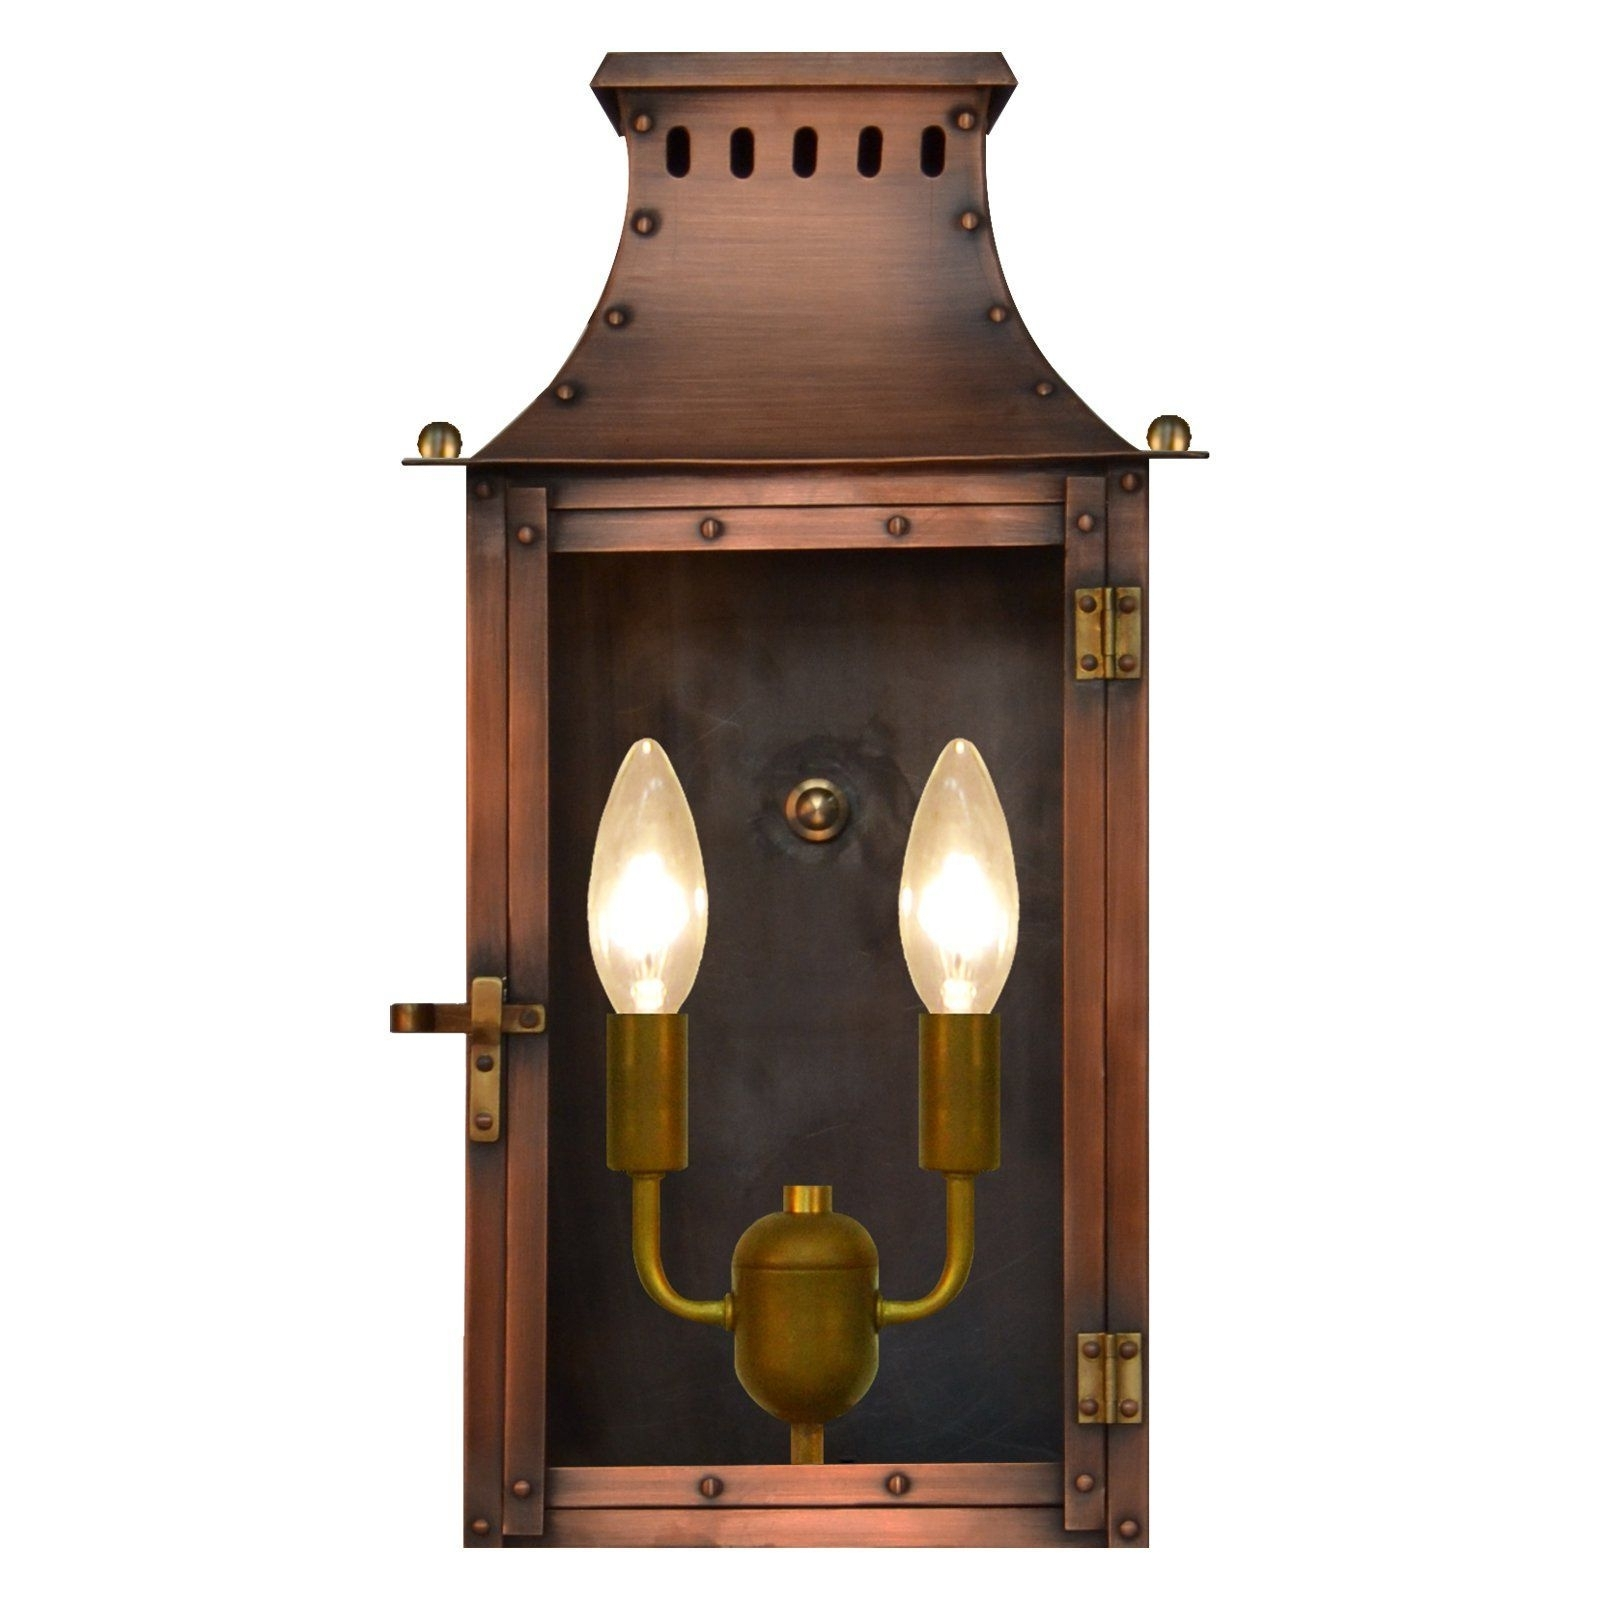 Copper Outdoor Electric Lanterns In Most Recent The Coppersmith York Town Yk Outdoor Flush Mount Lantern – Yk 16e (View 12 of 20)